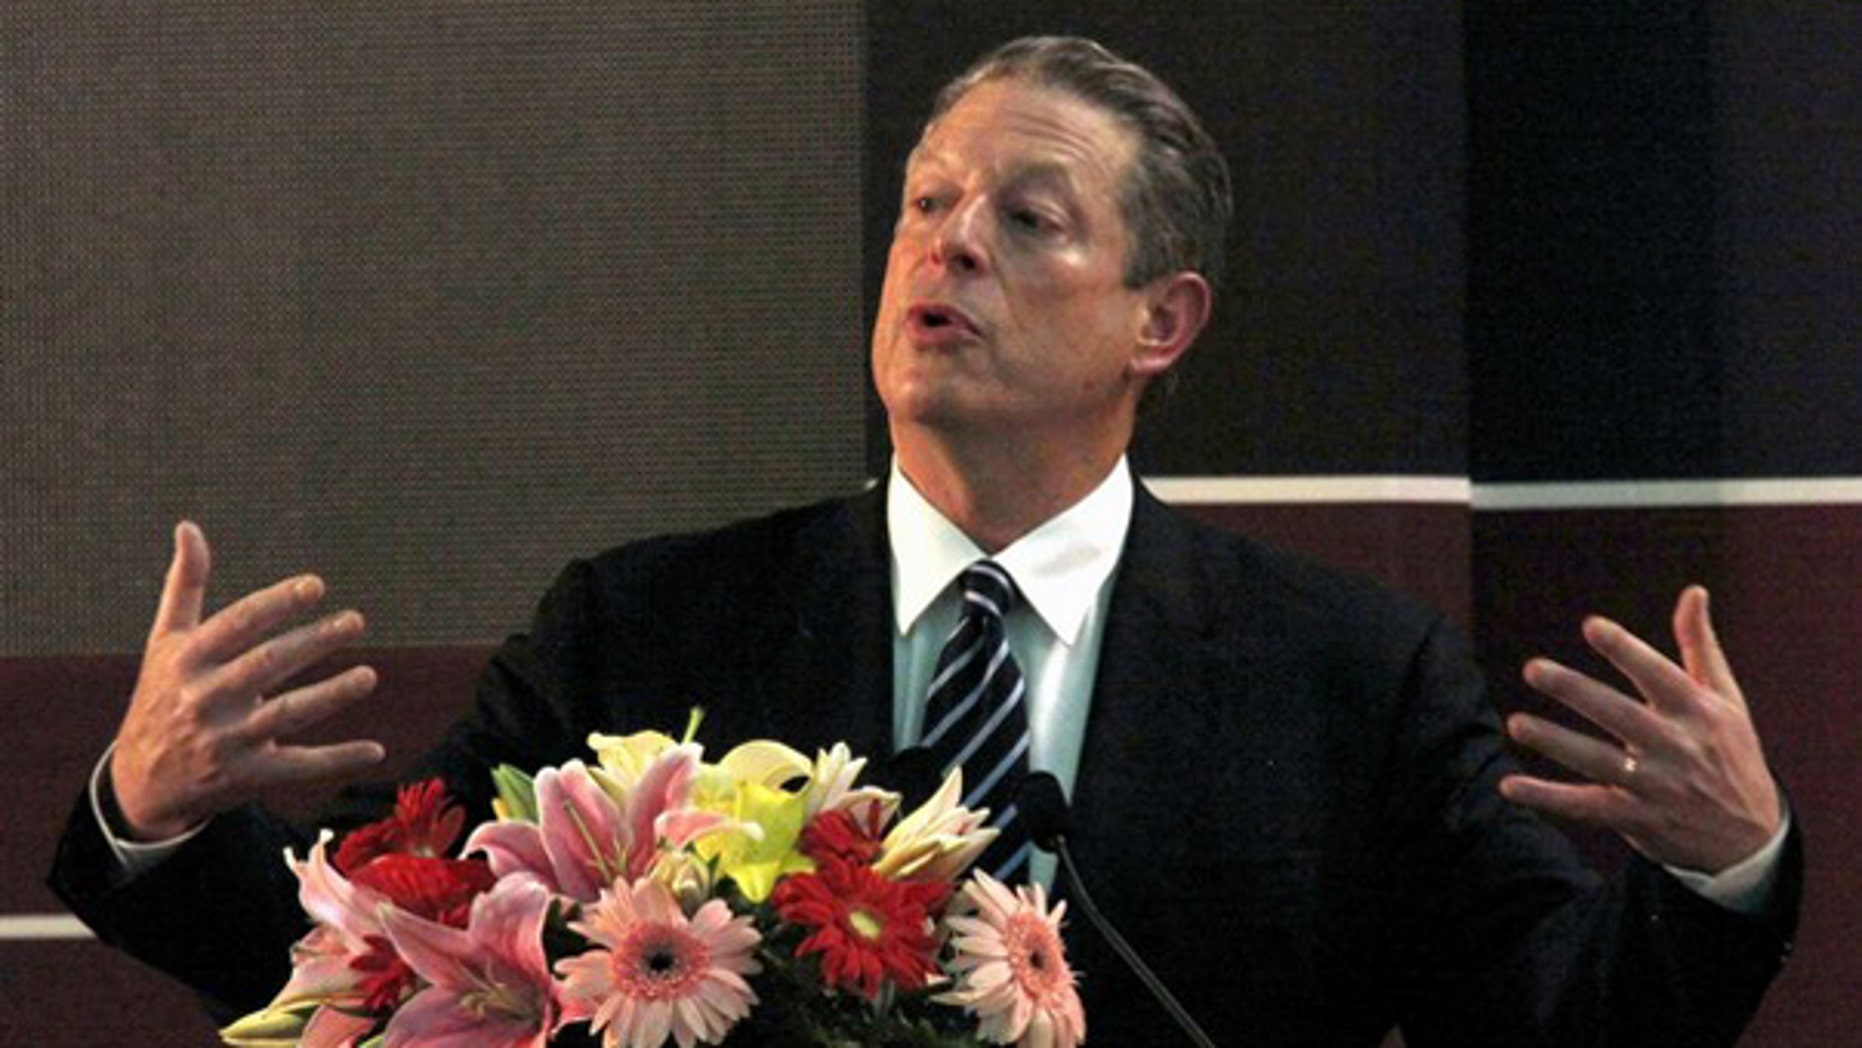 Former Vice President Al Gore speaks at the U.S.-China Strategic Forum on Clean Energy Cooperation in Beijing Oct. 21. (Reuters Photo)